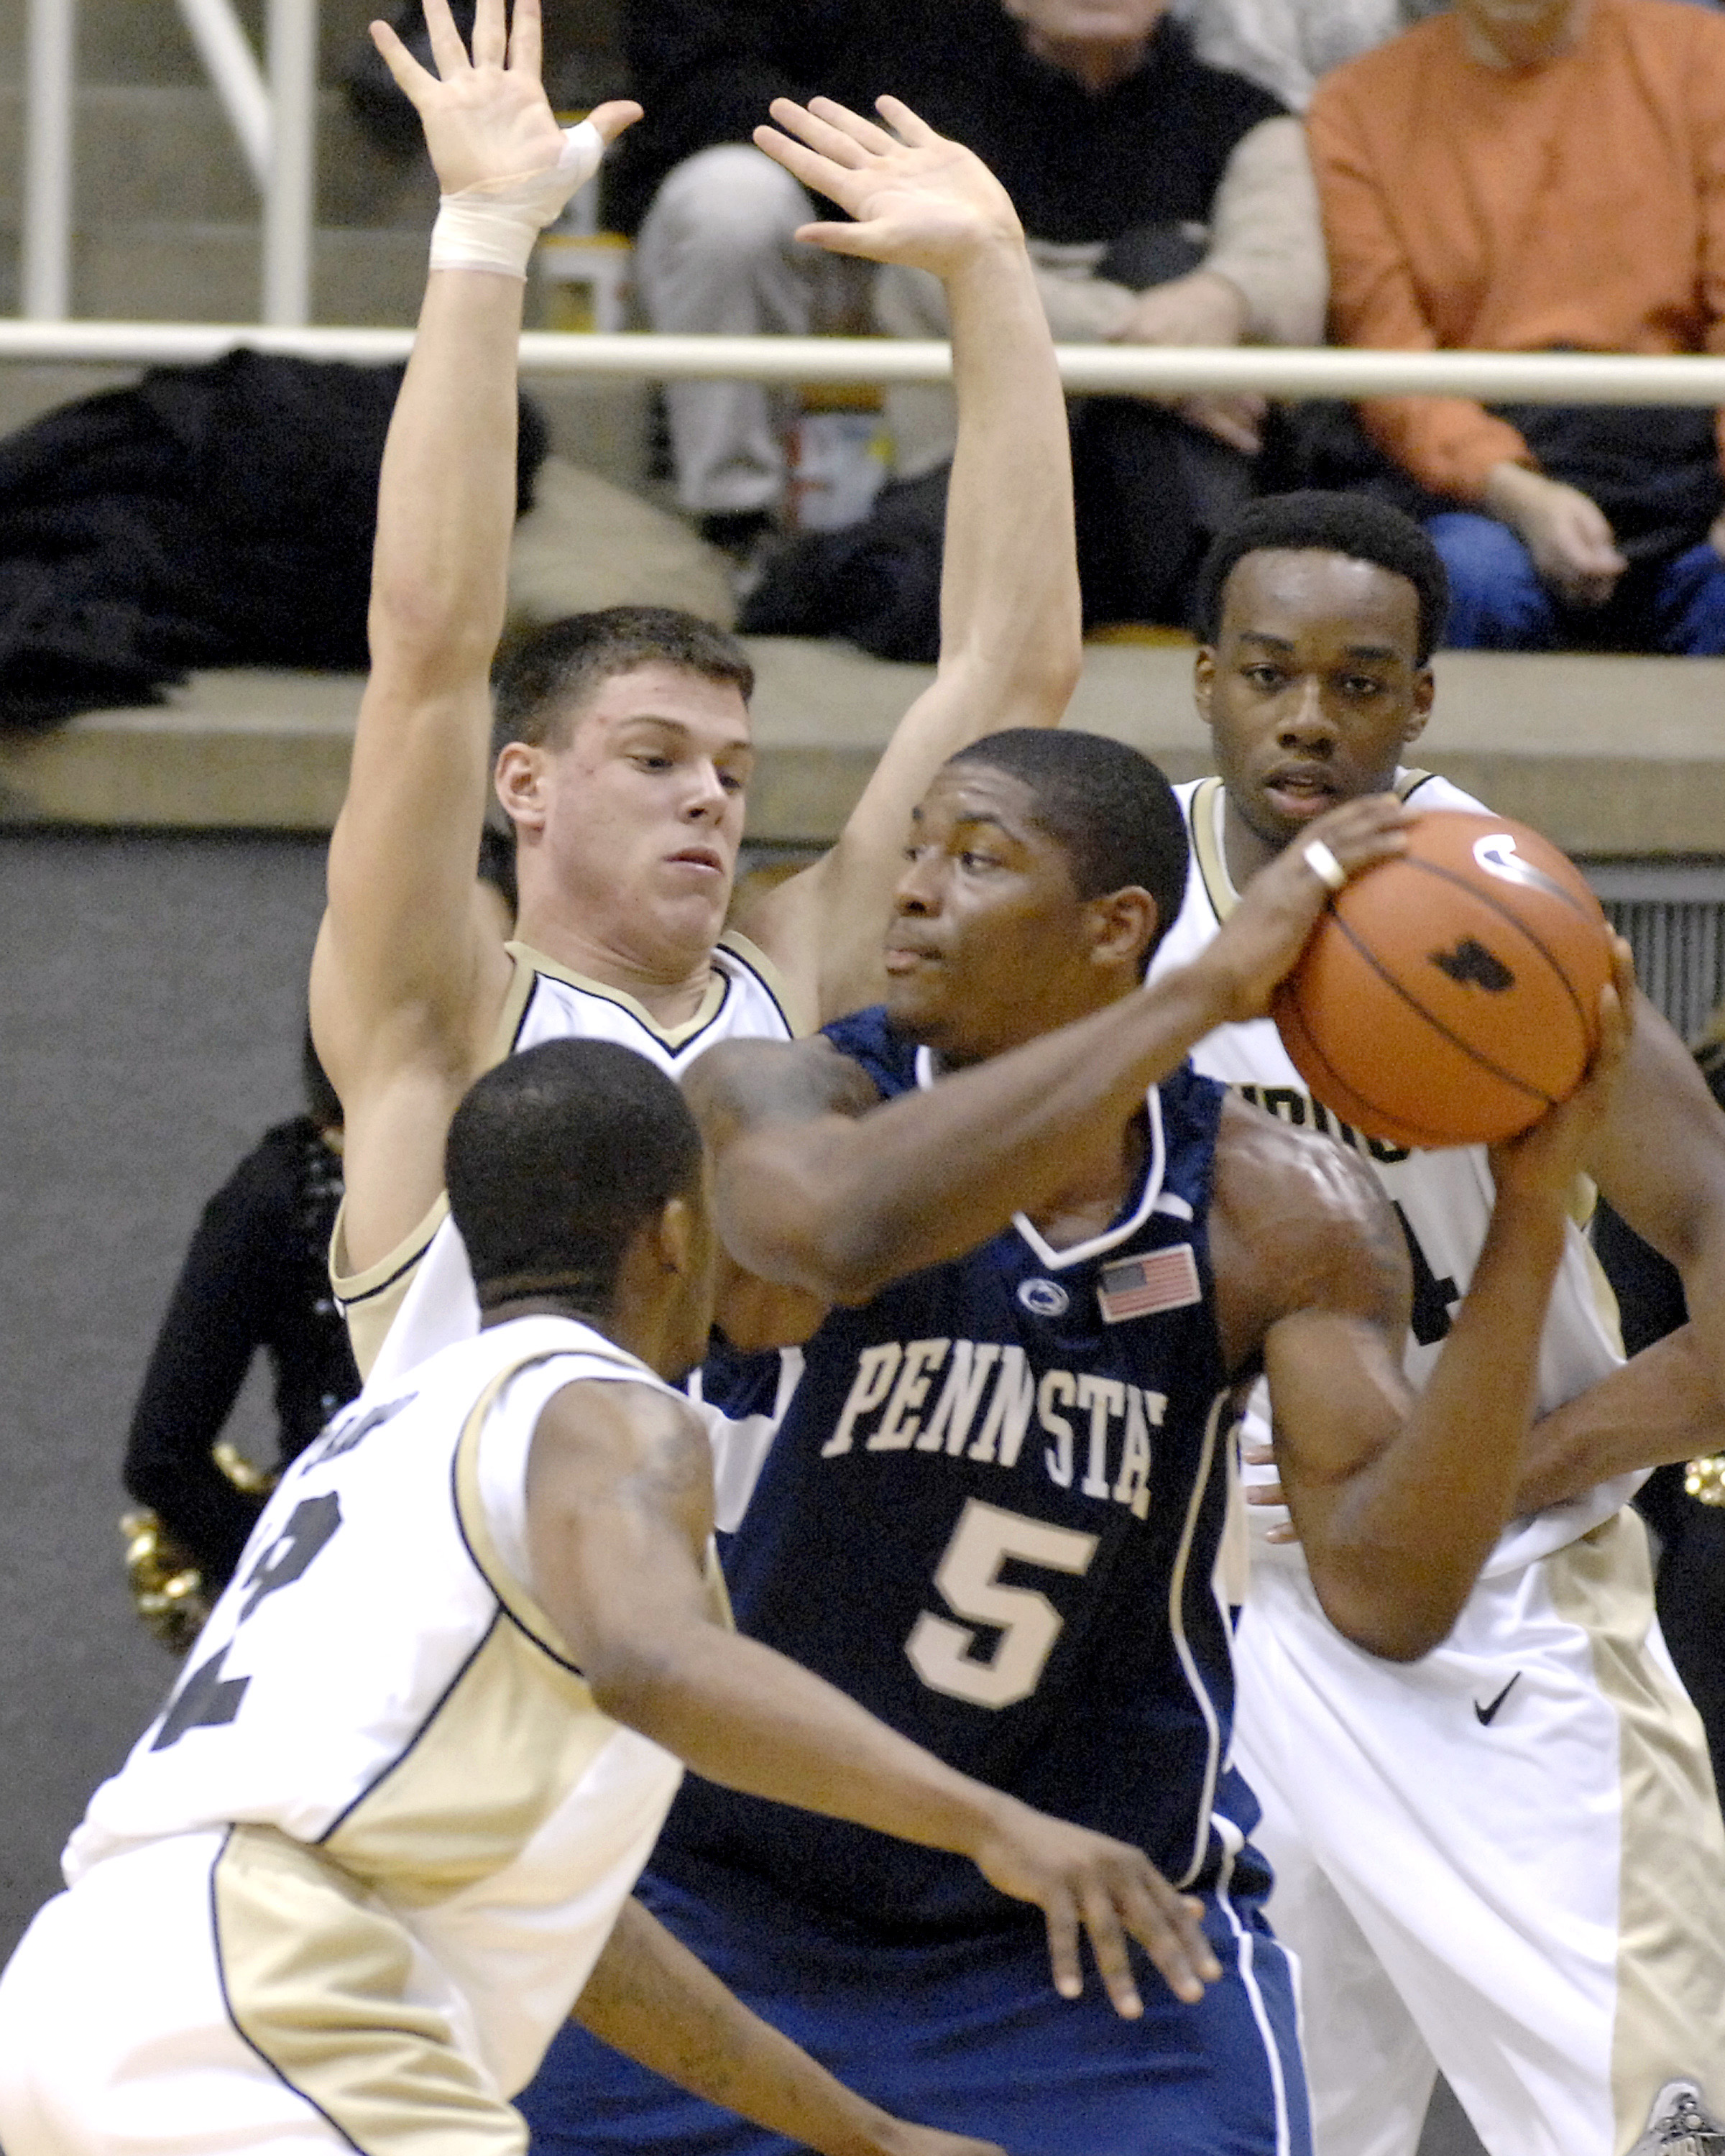 NCAA Men's Basketball - Penn State vs Purdue - January 6, 2007